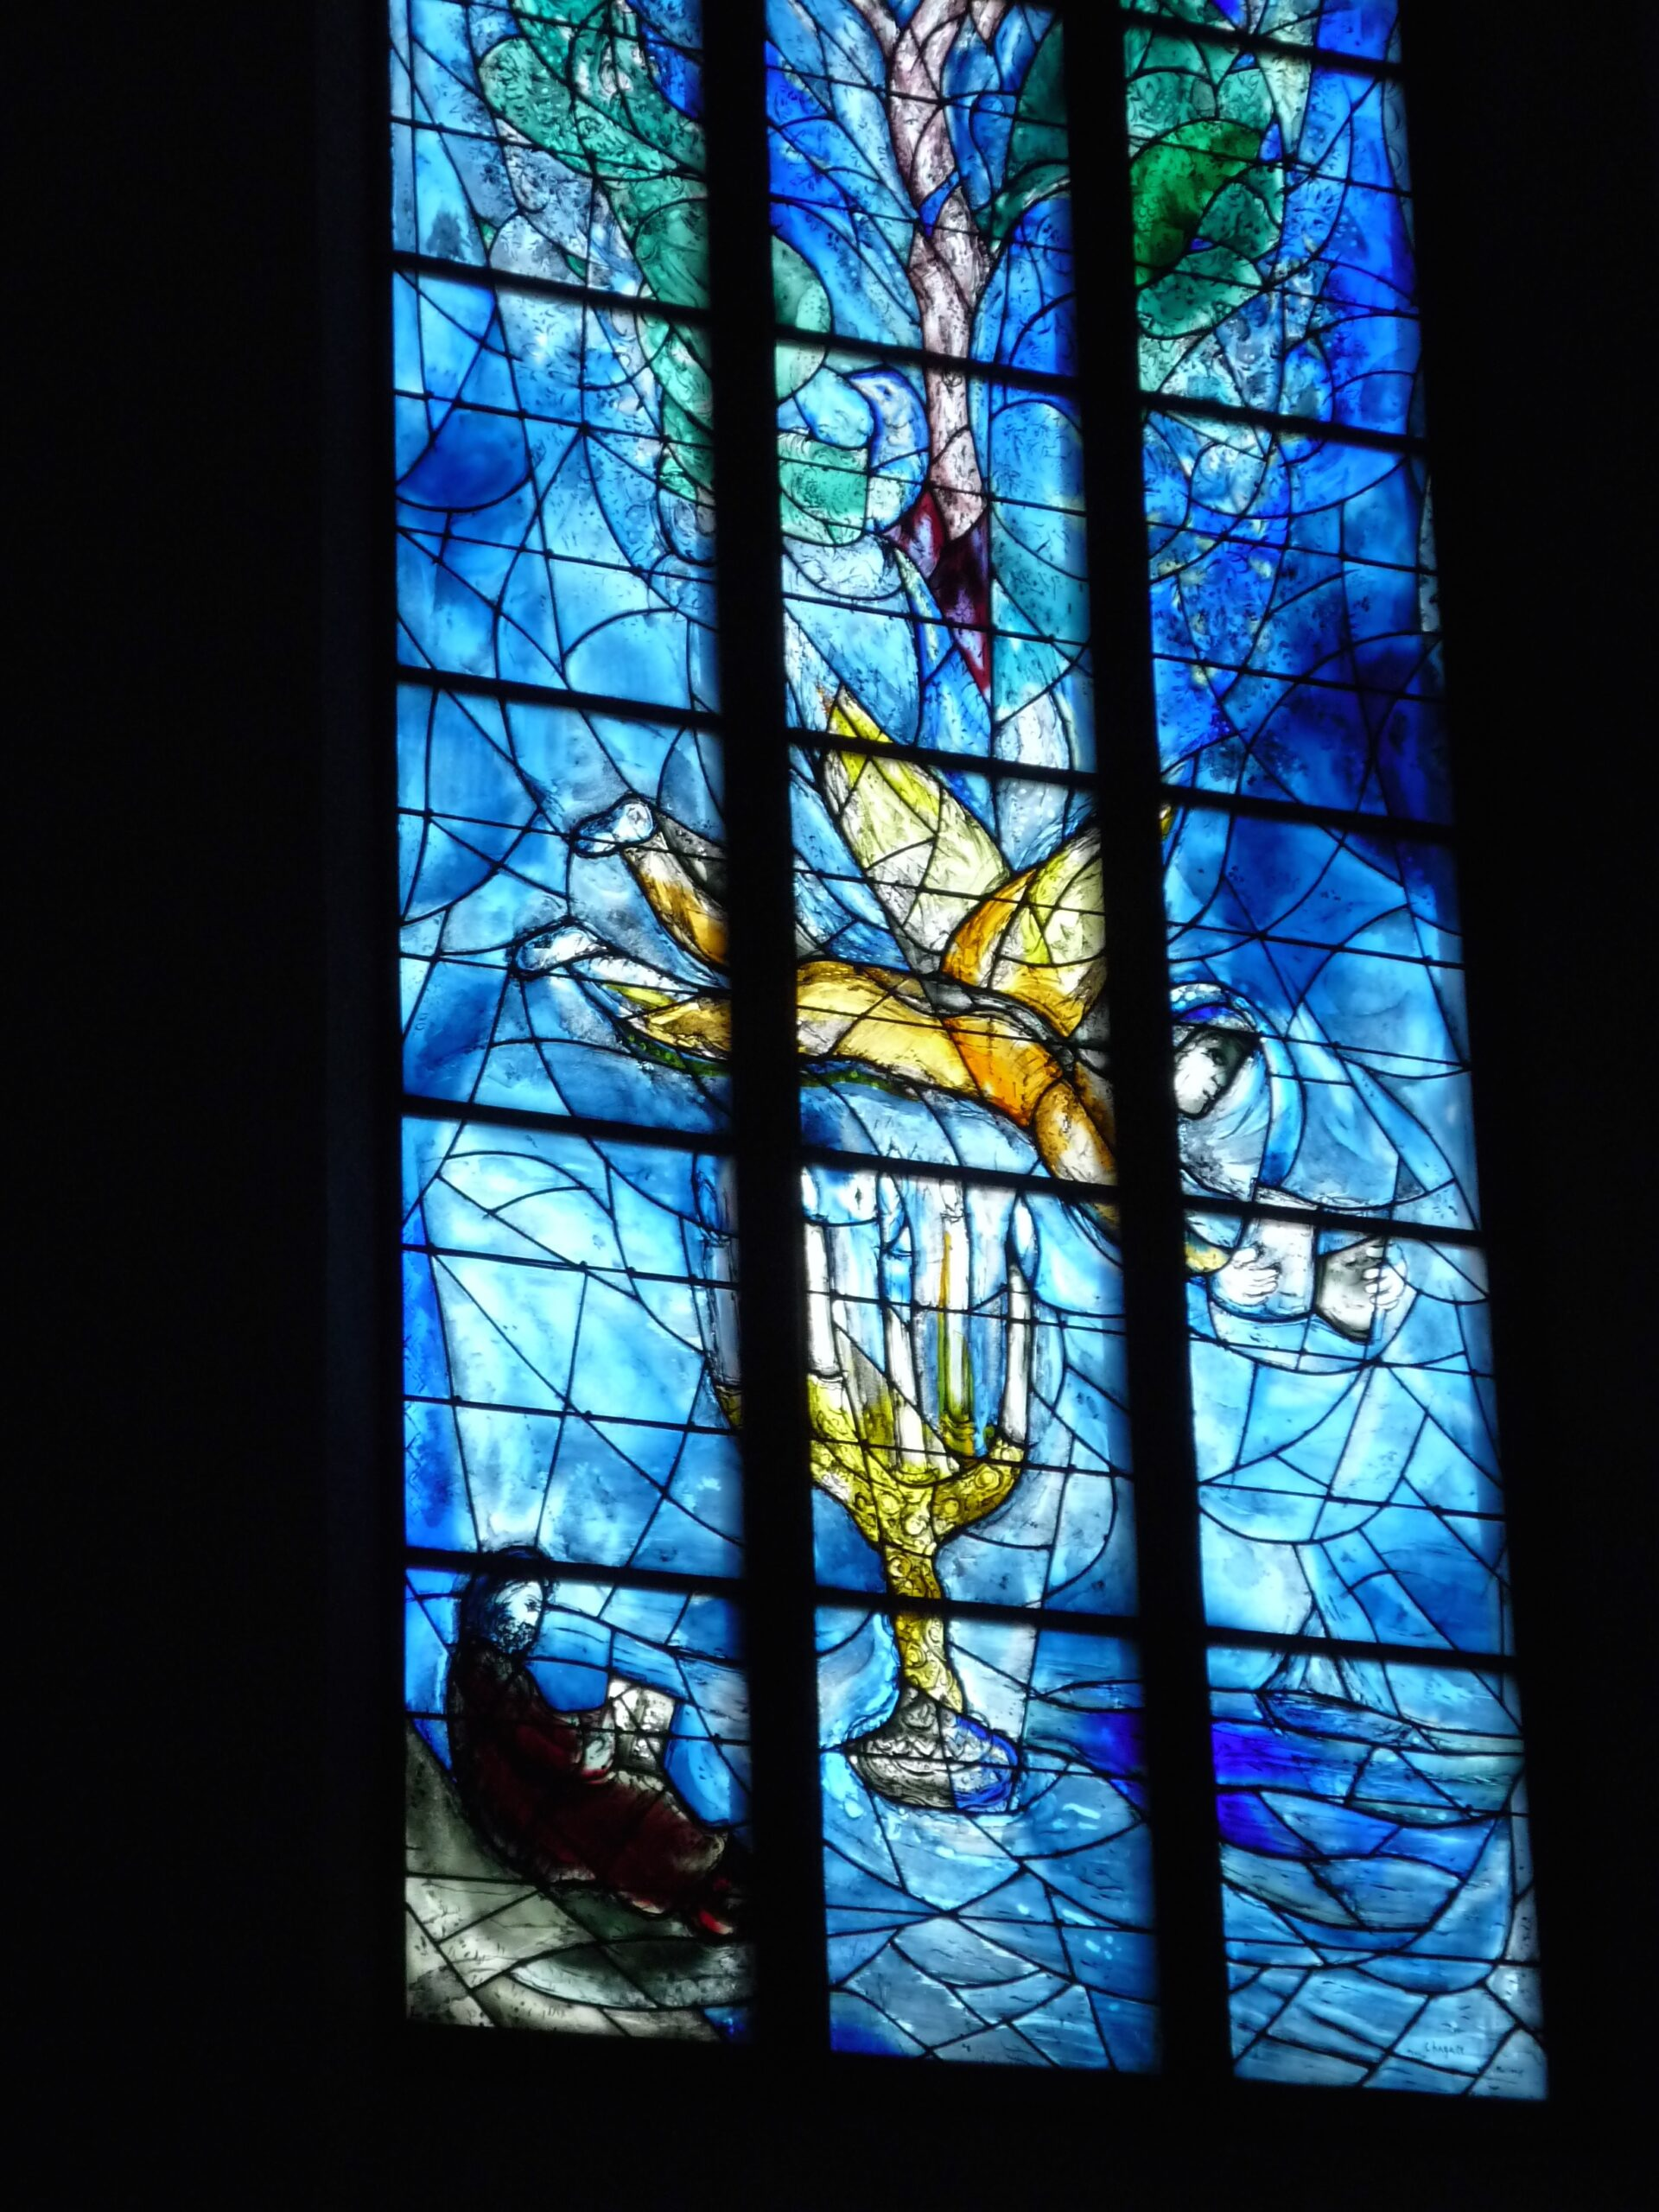 """""""Your Word is Lamp unto My Feet."""" Stained glass window in shades of blues with flying angel and candelabra by Marc Chagall/ Charles Marq. Pfarrkirche St. Stephan, Mainz, Germany, 2016."""